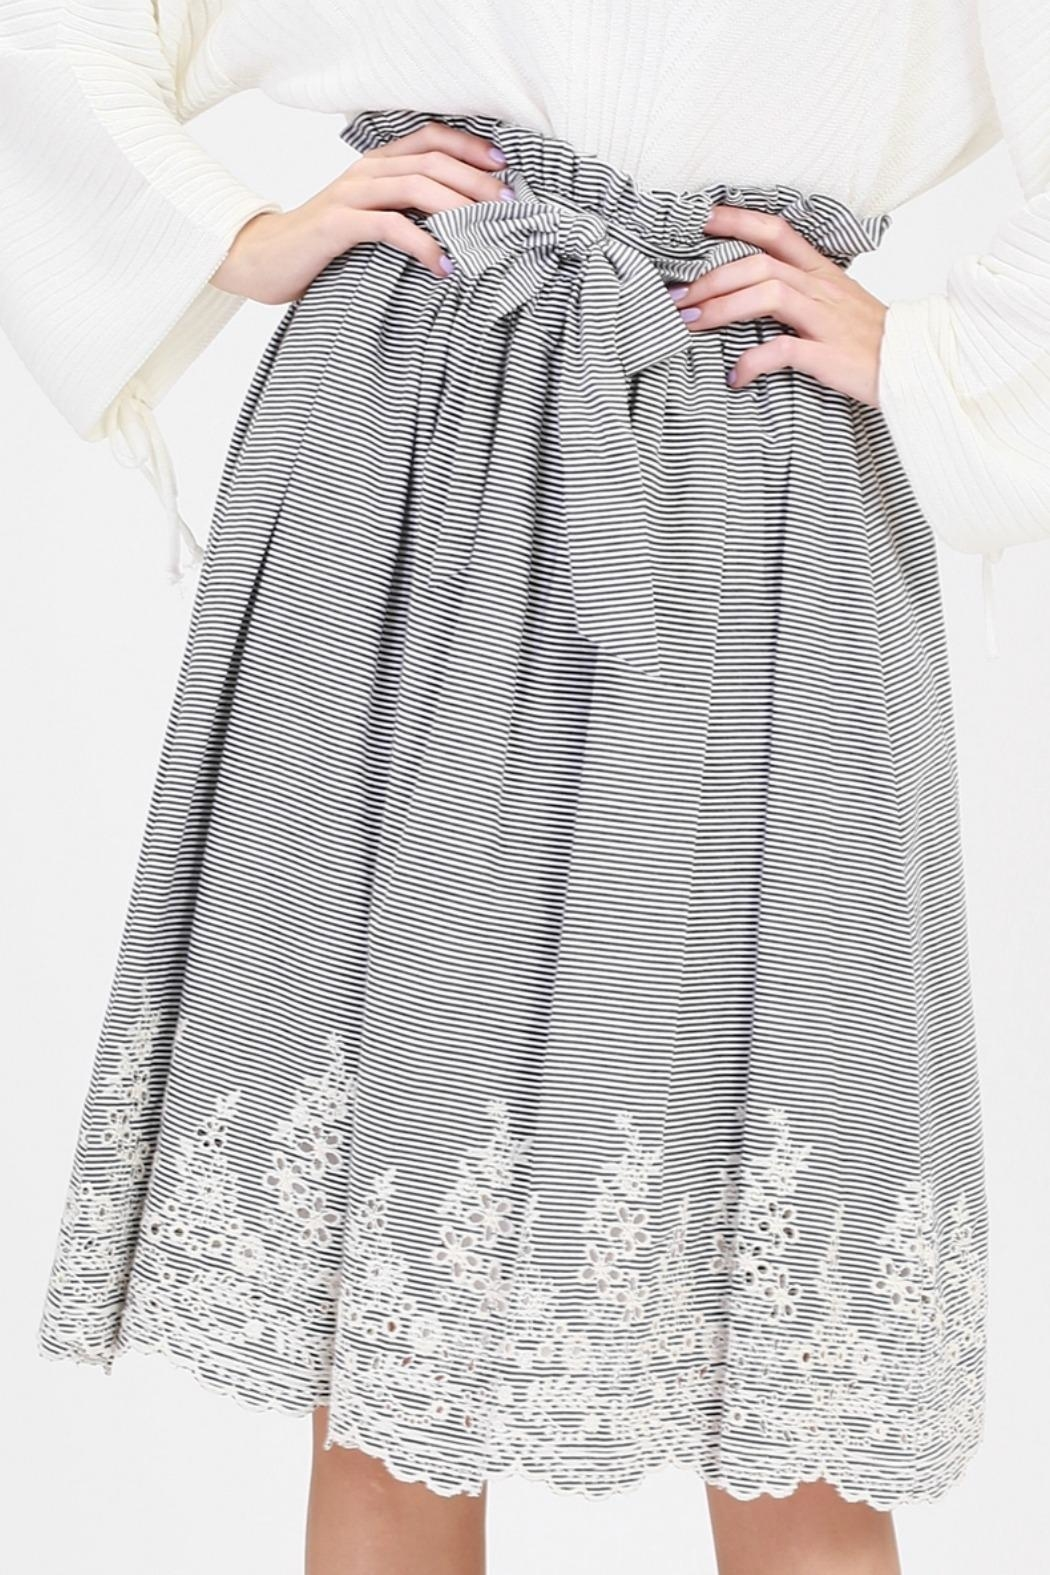 HYFVE Striped Embroidered Skirt - Main Image